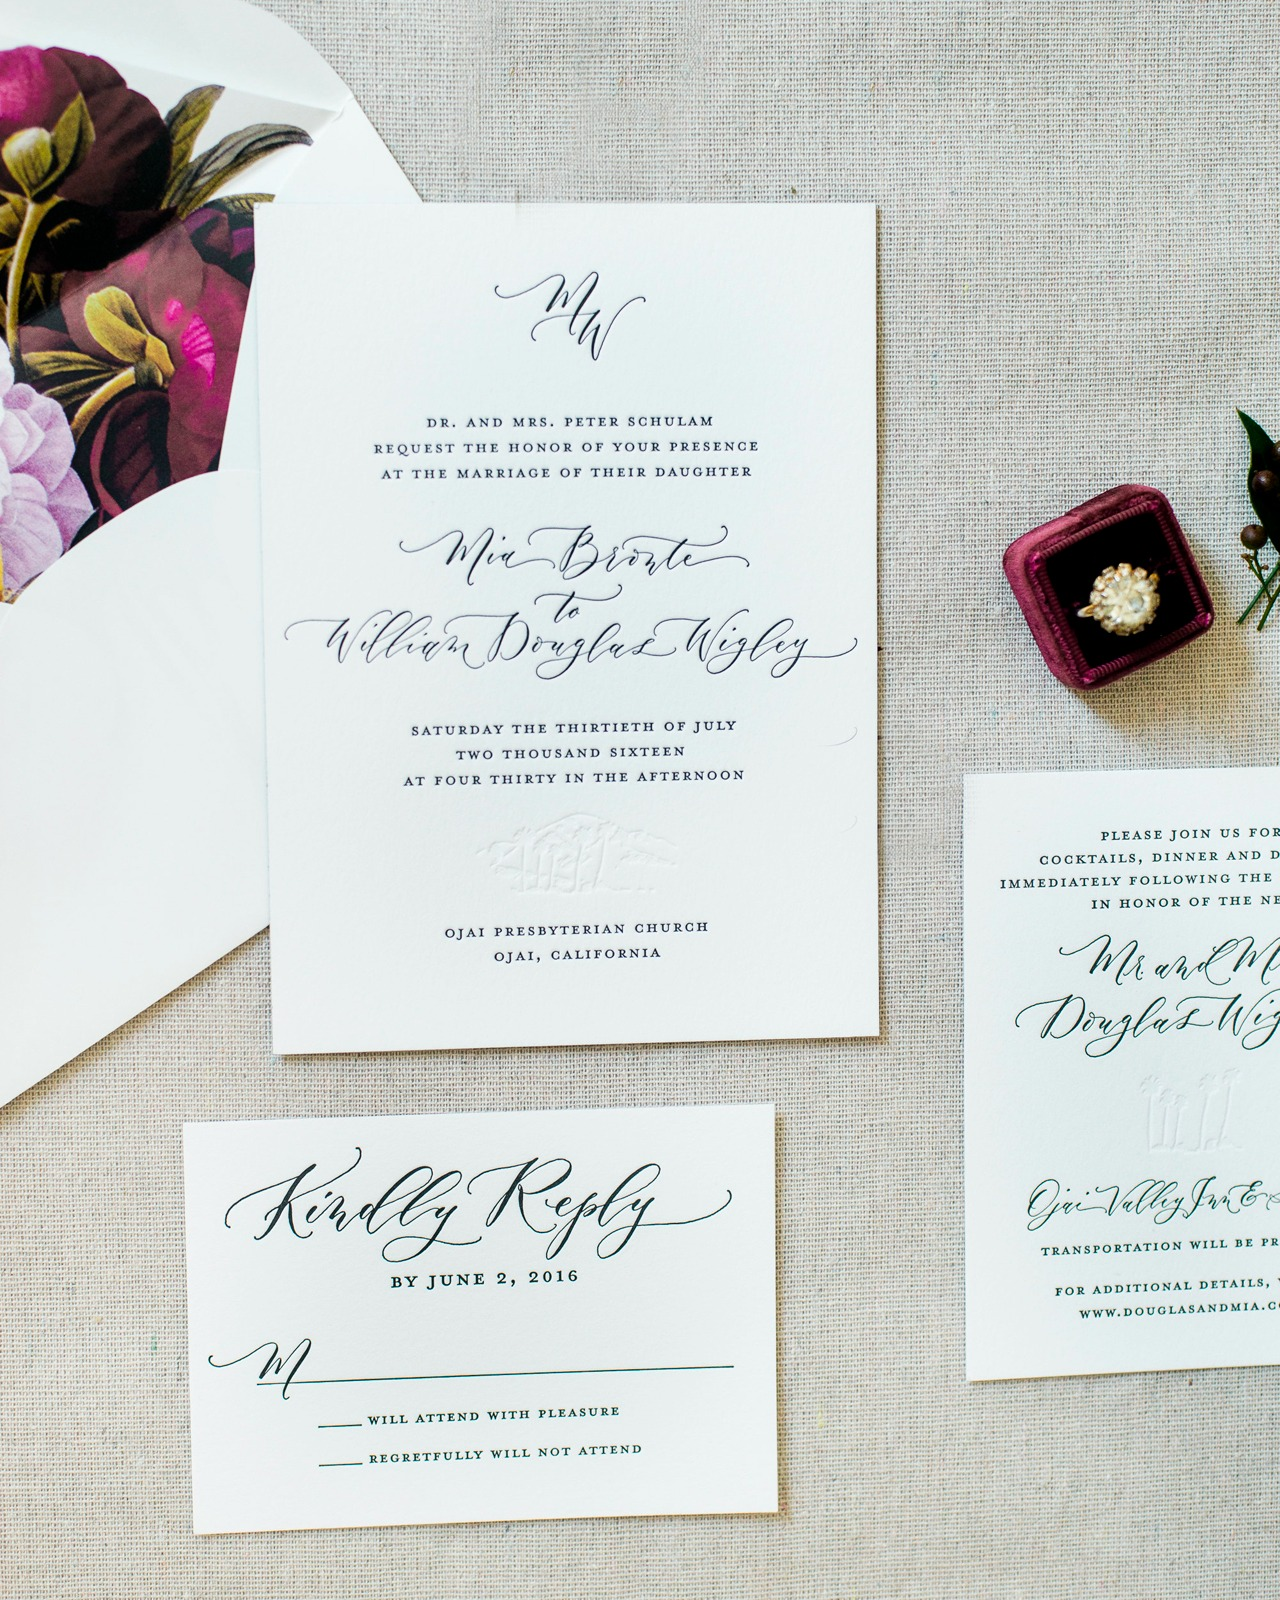 Timeless Black and White Wedding Invitations